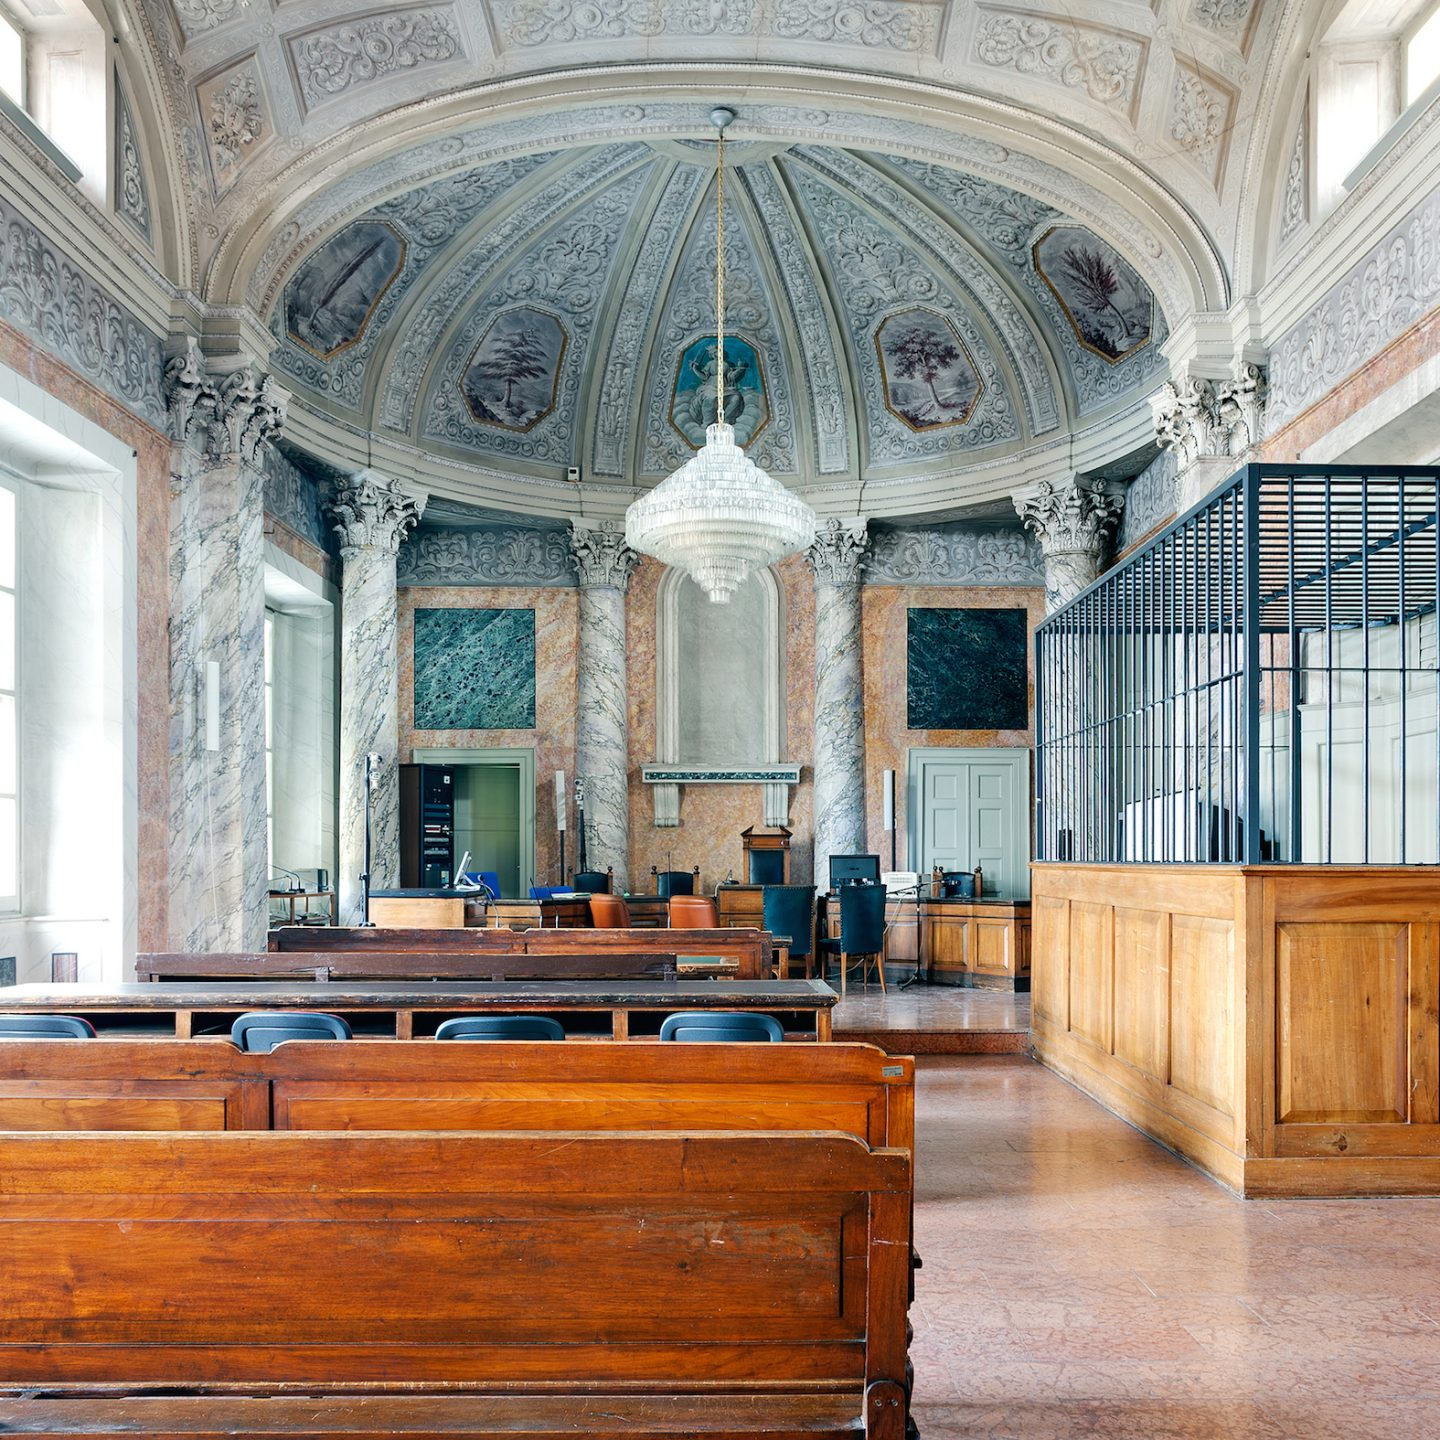 Luca Sironi_photography-_Fragments of justice_Luca Sironi_cremona_7570